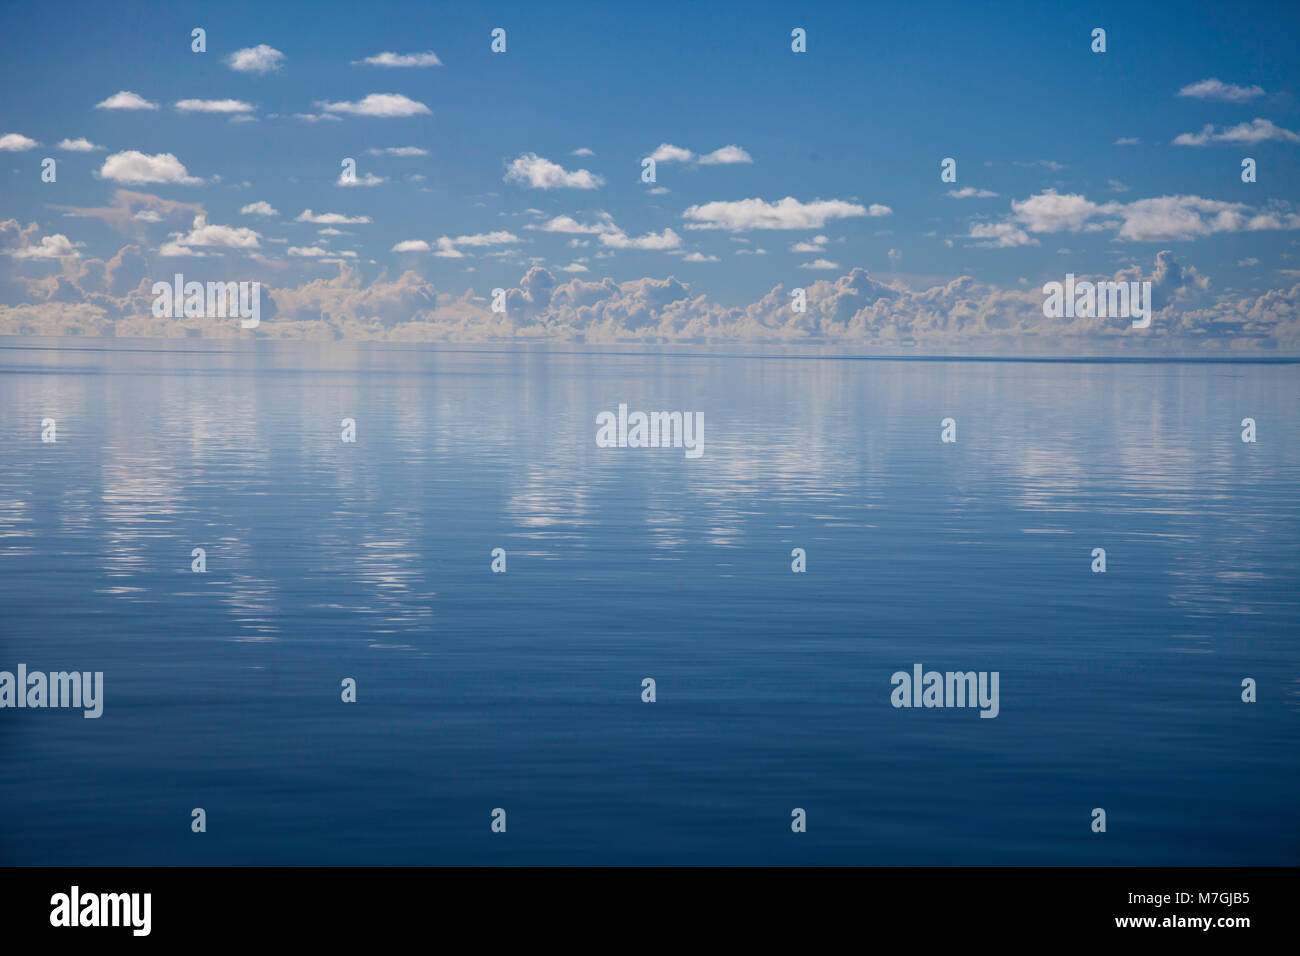 A glassy flat day on the ocean off the island of Yap, Micronesia. - Stock Image